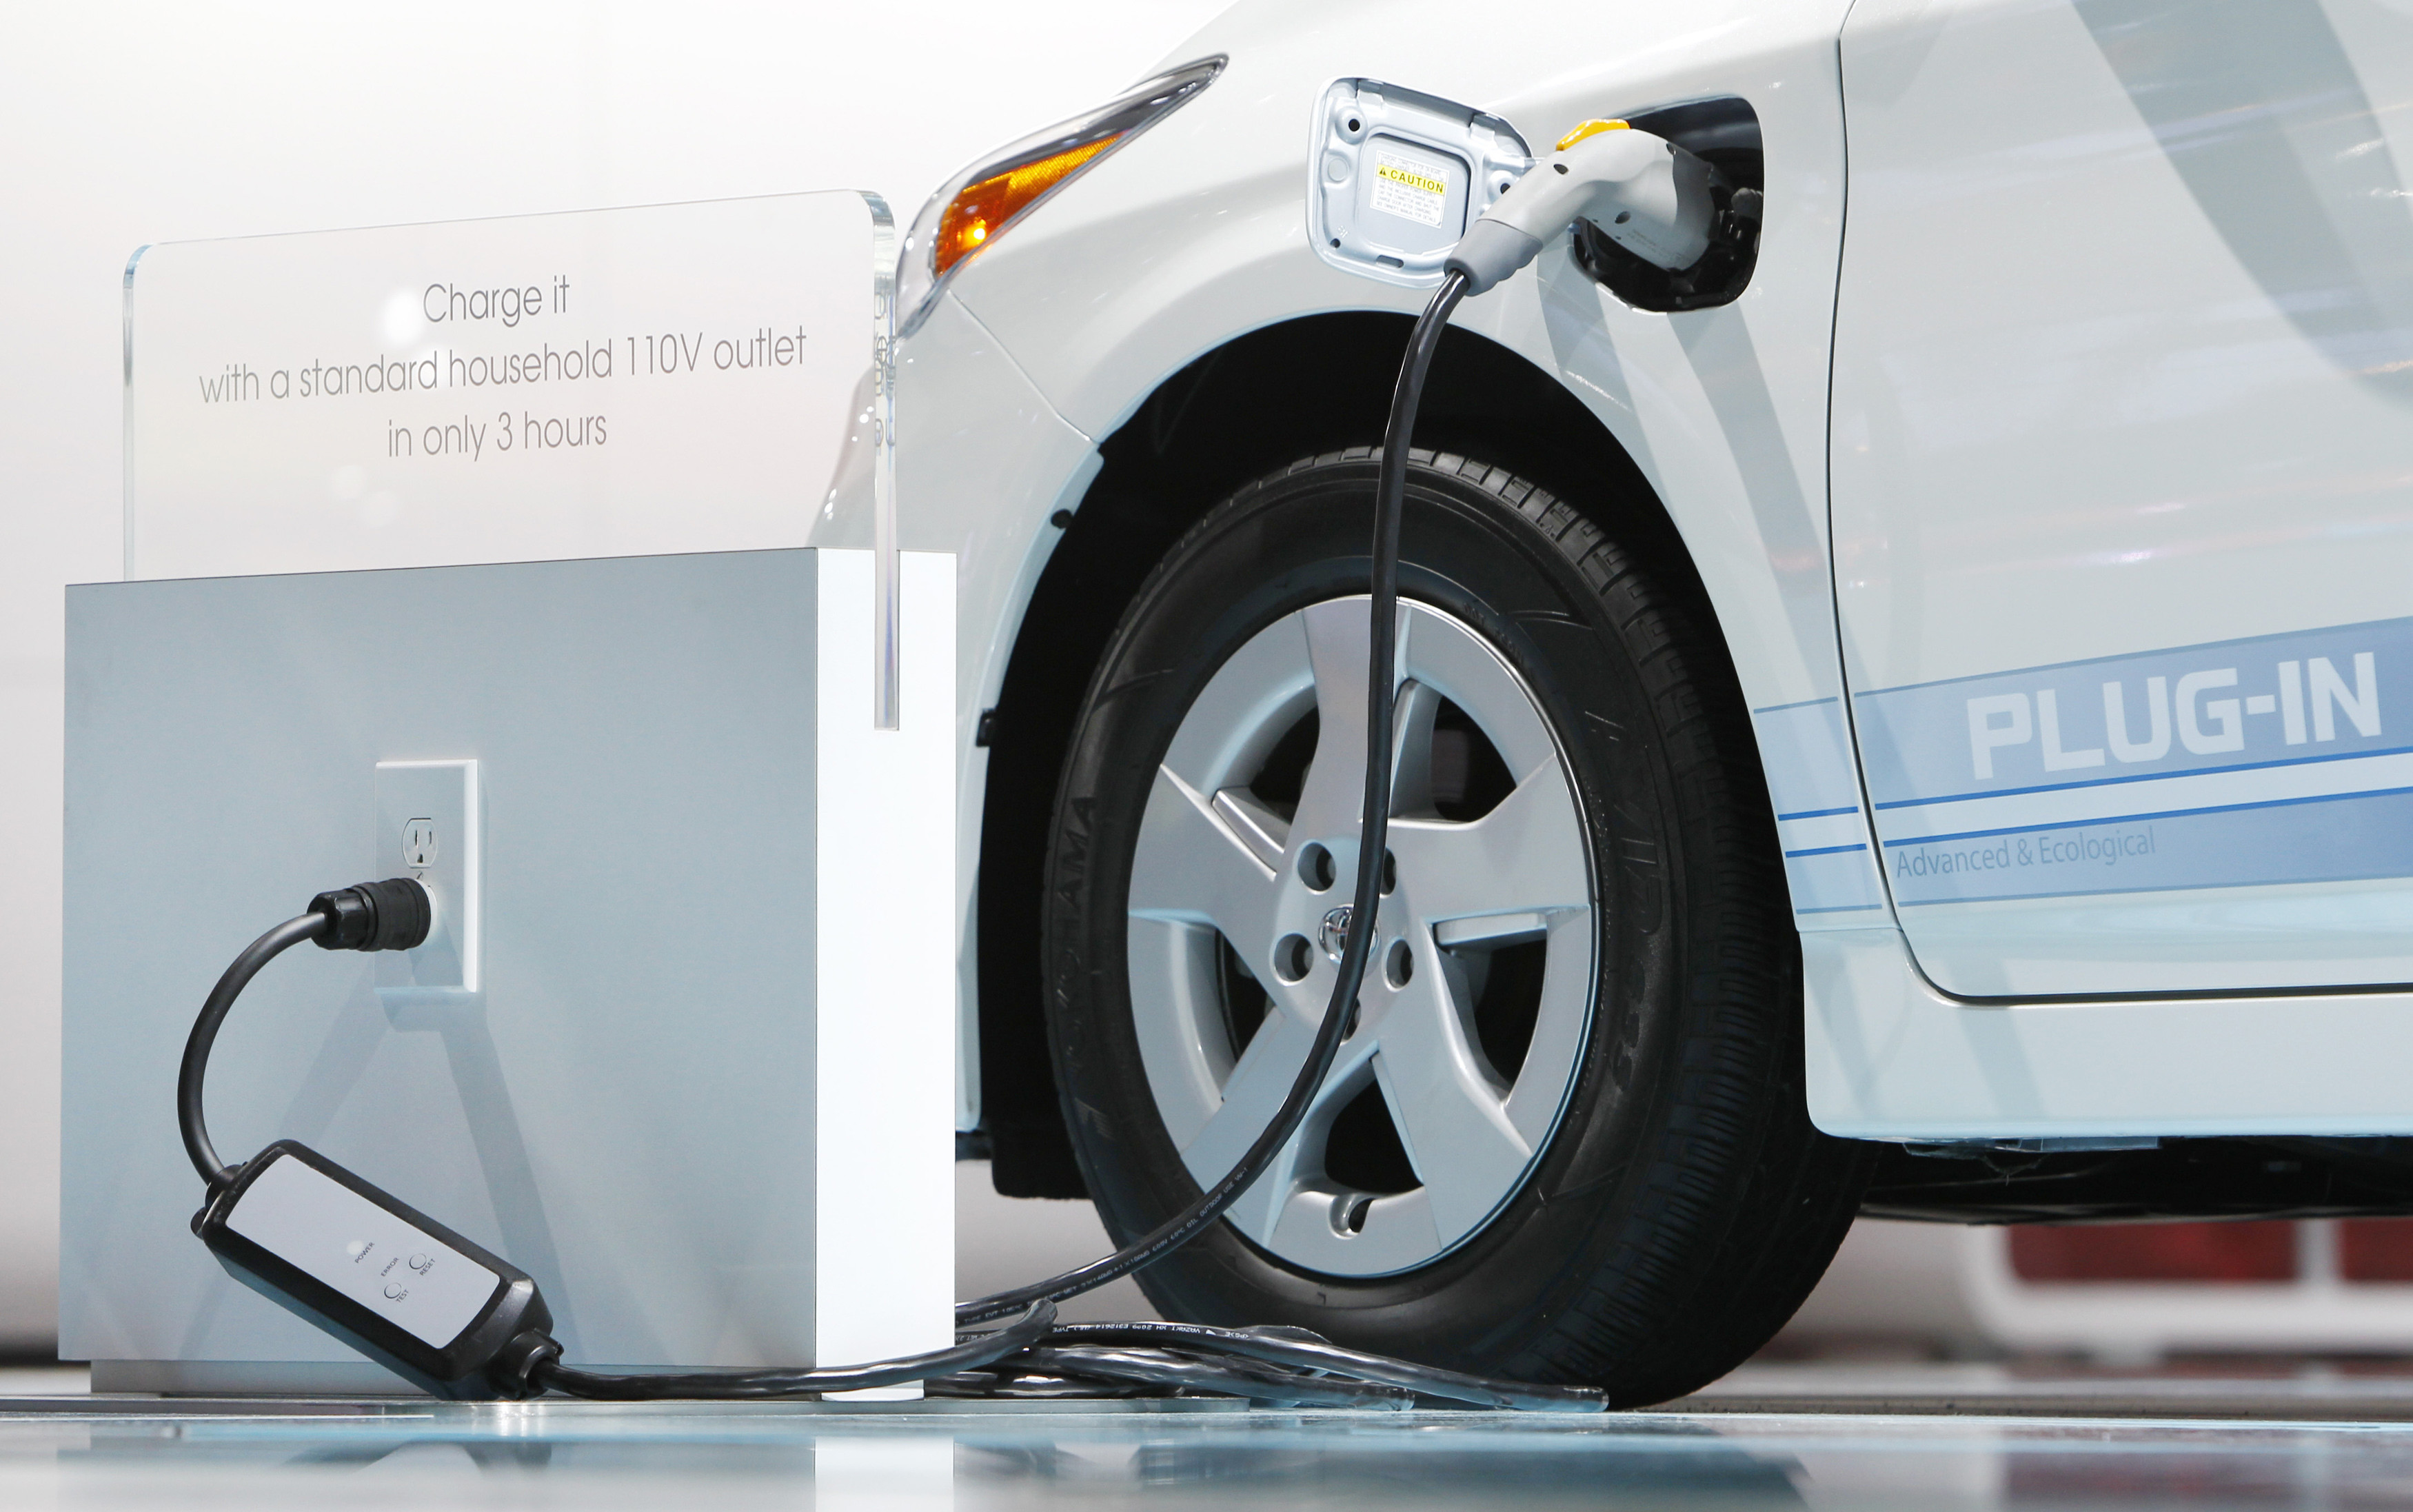 an electric car is seen plugged into a wall